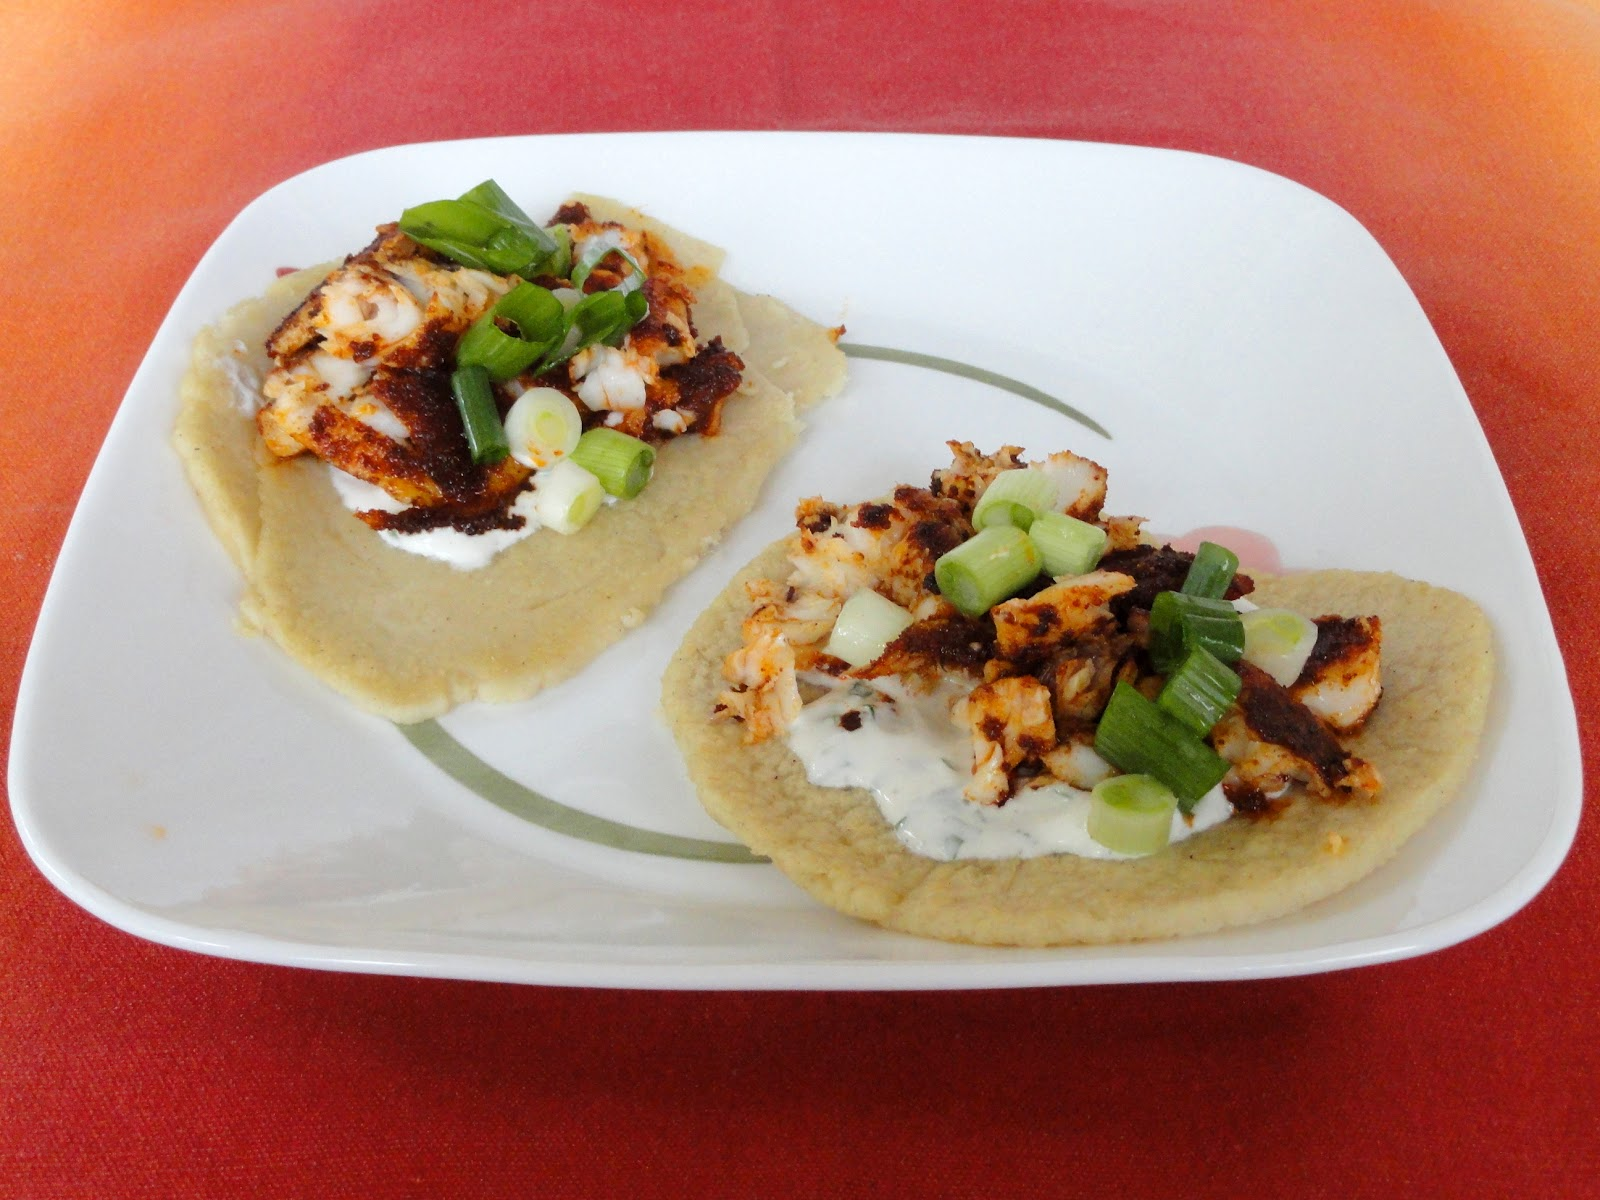 Blackened Tilapia Tacos with Cilantro Lime Sauce are tasty and fresh ...